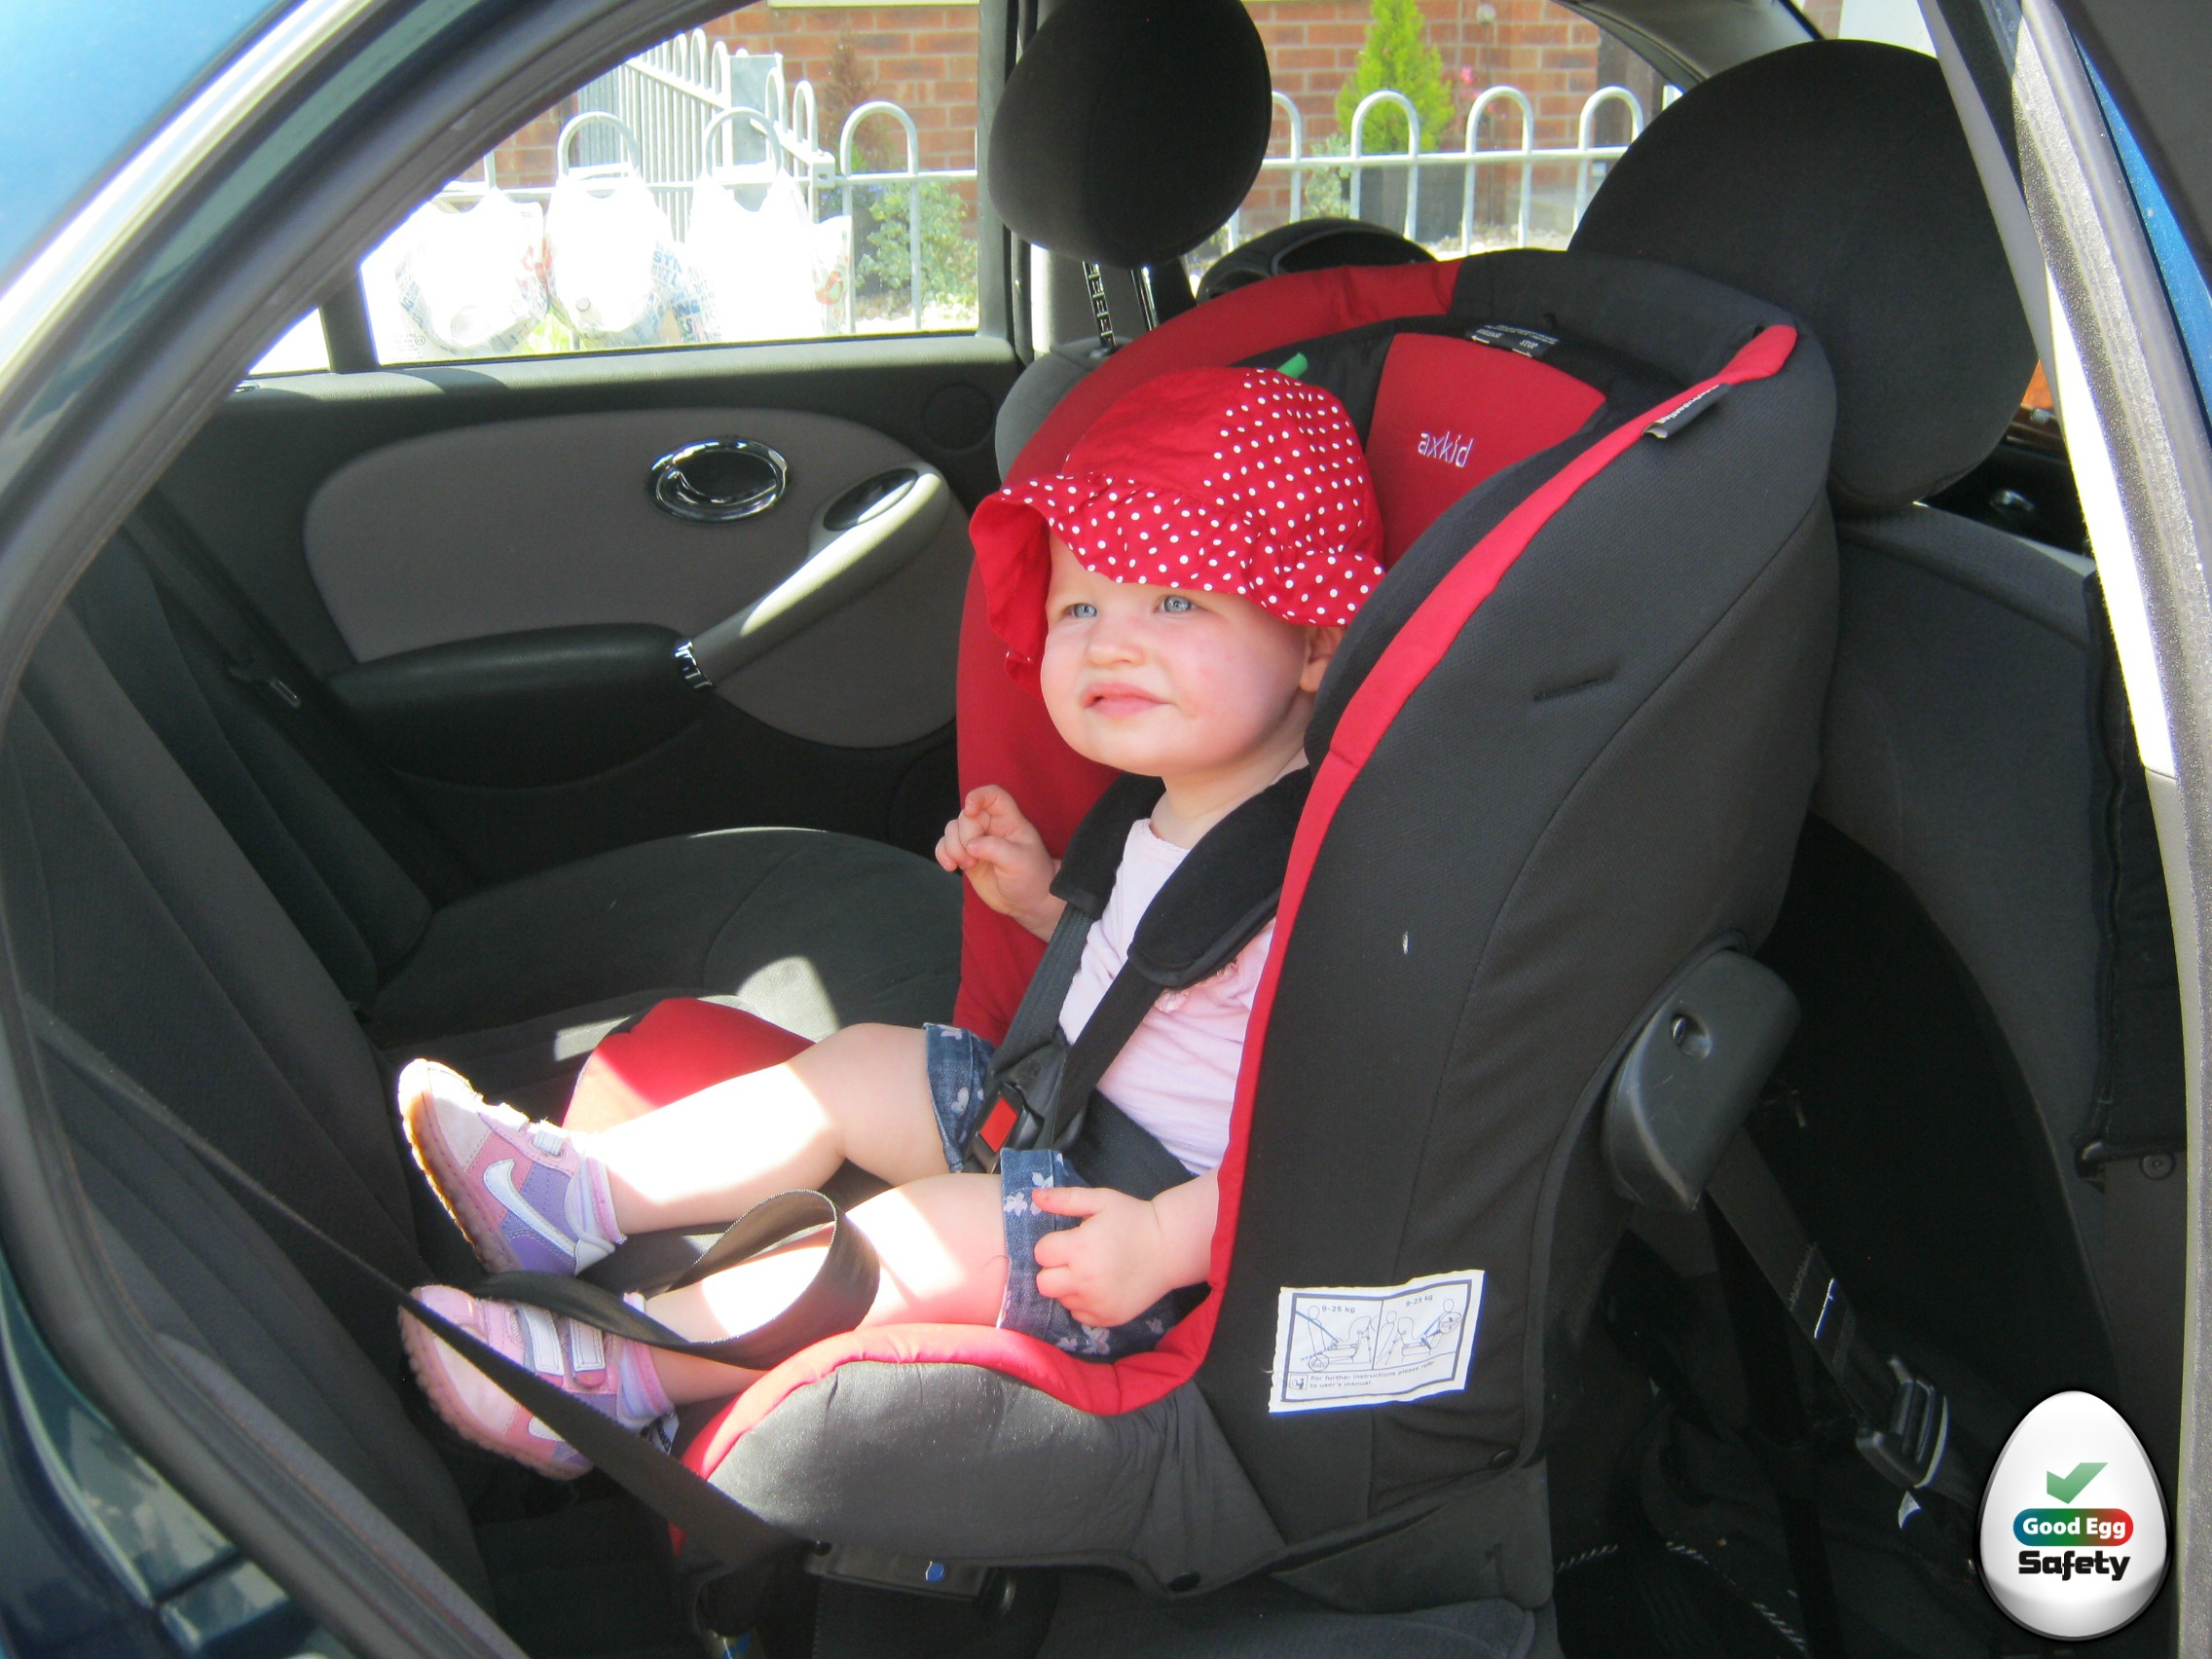 Baby Car Seat Uk Recent Blog Posts Good Egg Car Safety